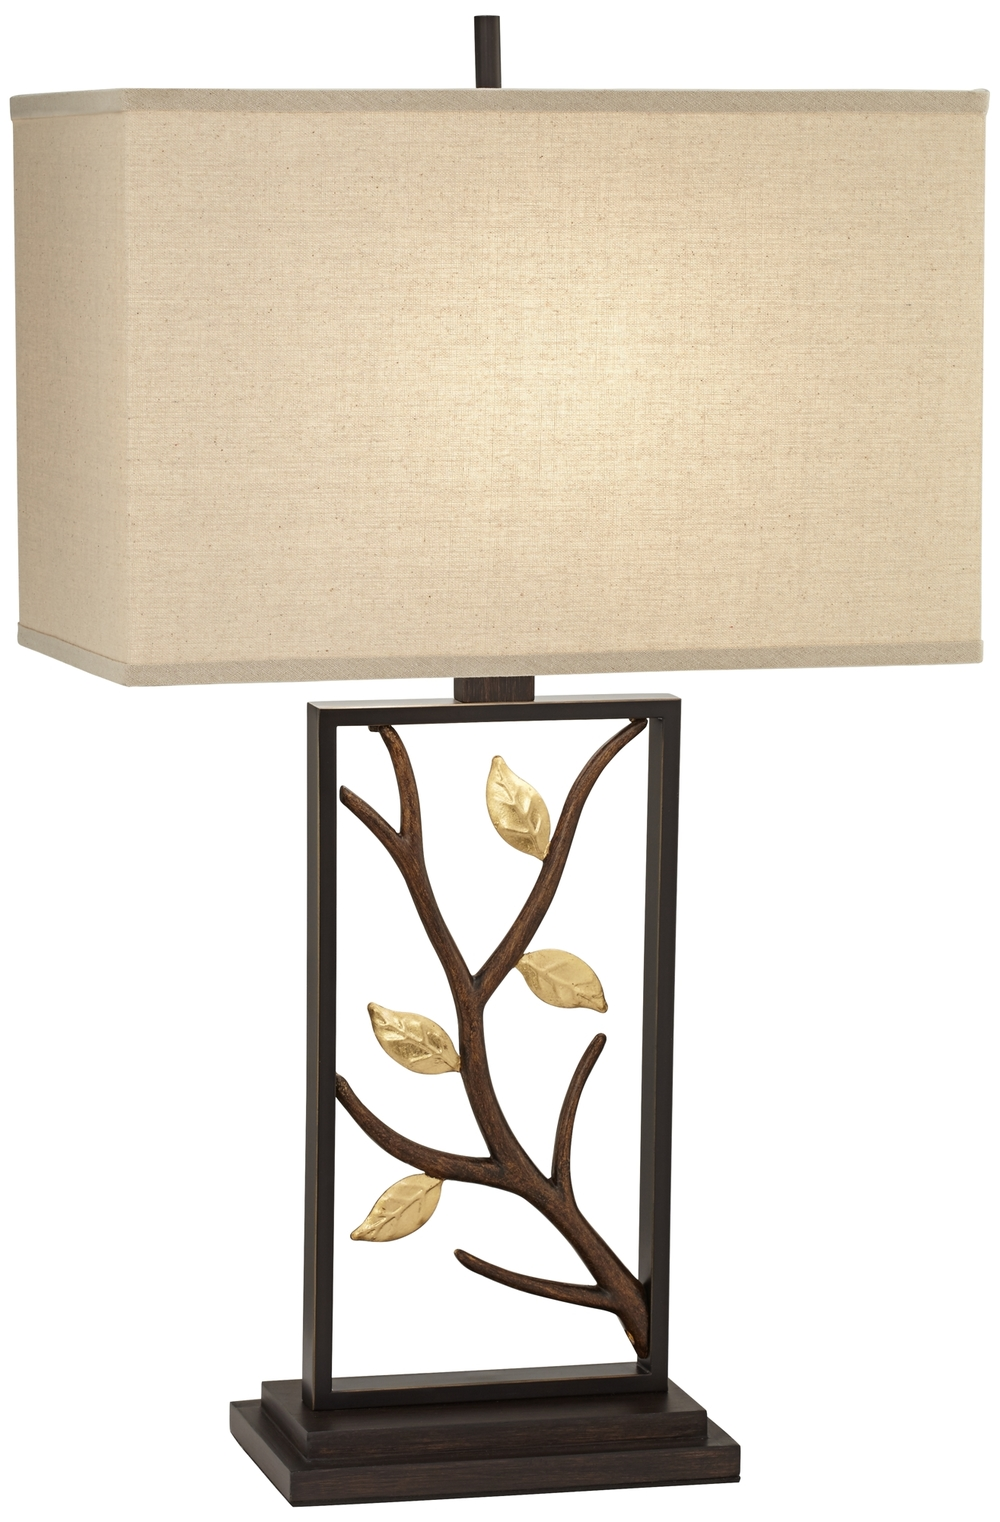 Pacific Coast Lighting - Metal Table Lamp with Branch and Leaves